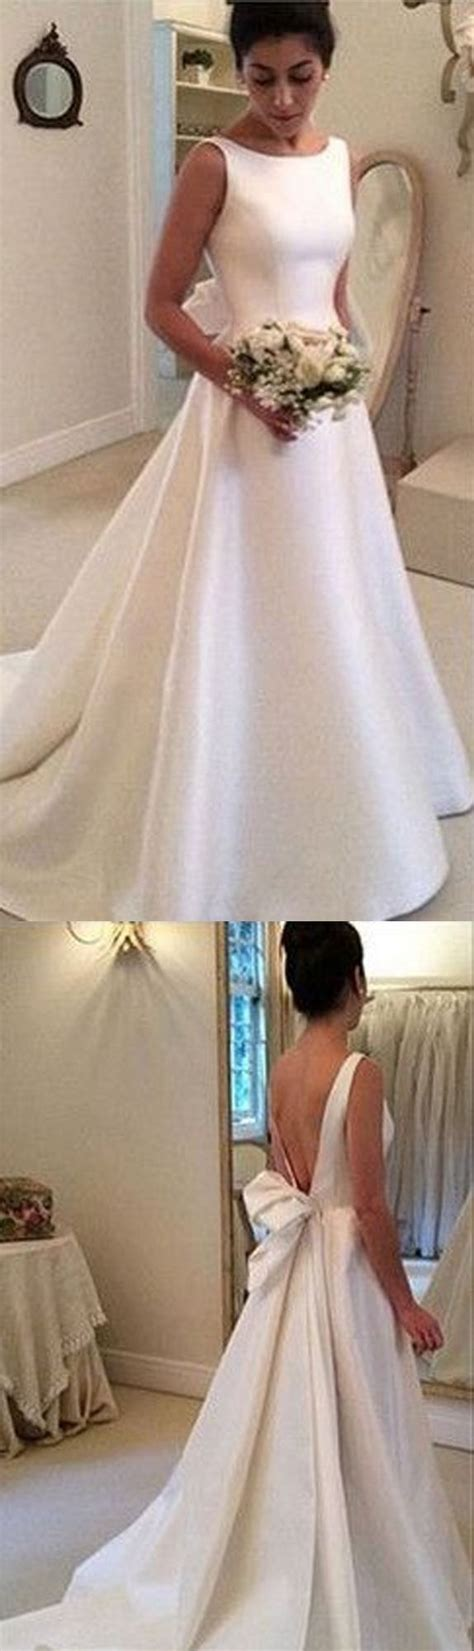 Wedding Gown Satin by 25 Best Ideas About Satin Wedding Gowns On